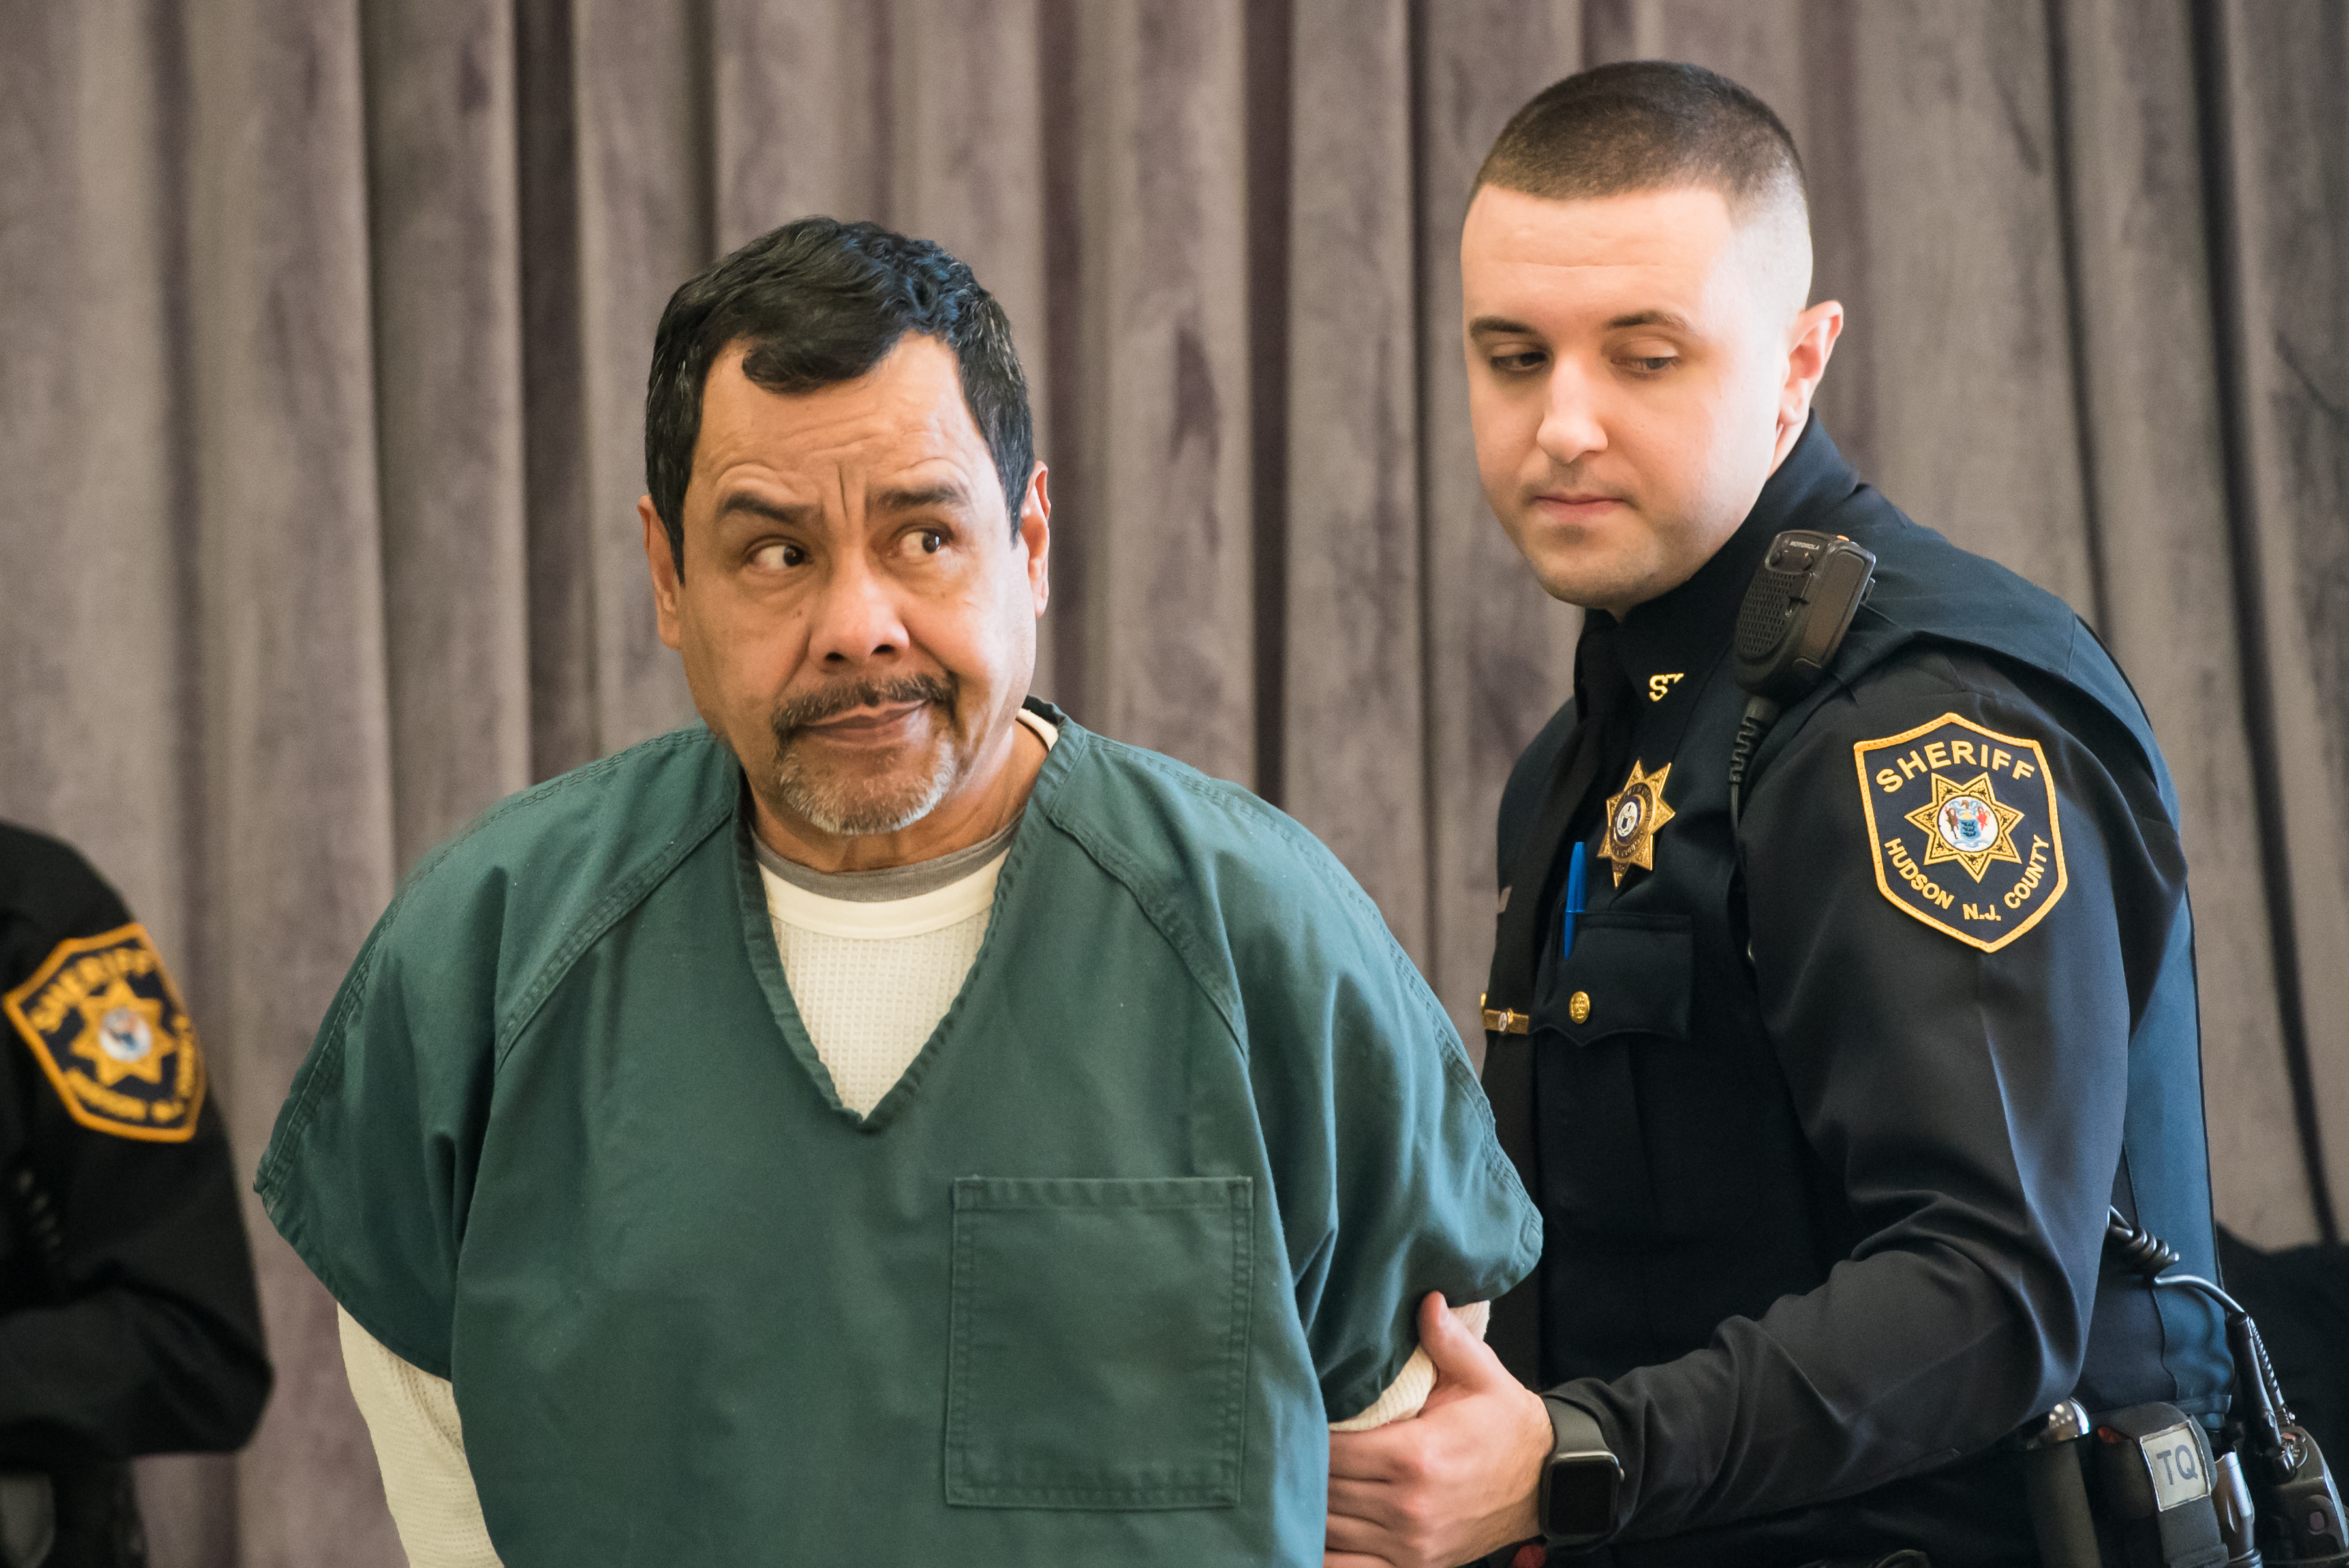 A life sentence: New Jersey man gets 60 years for raping 'granddaughters'